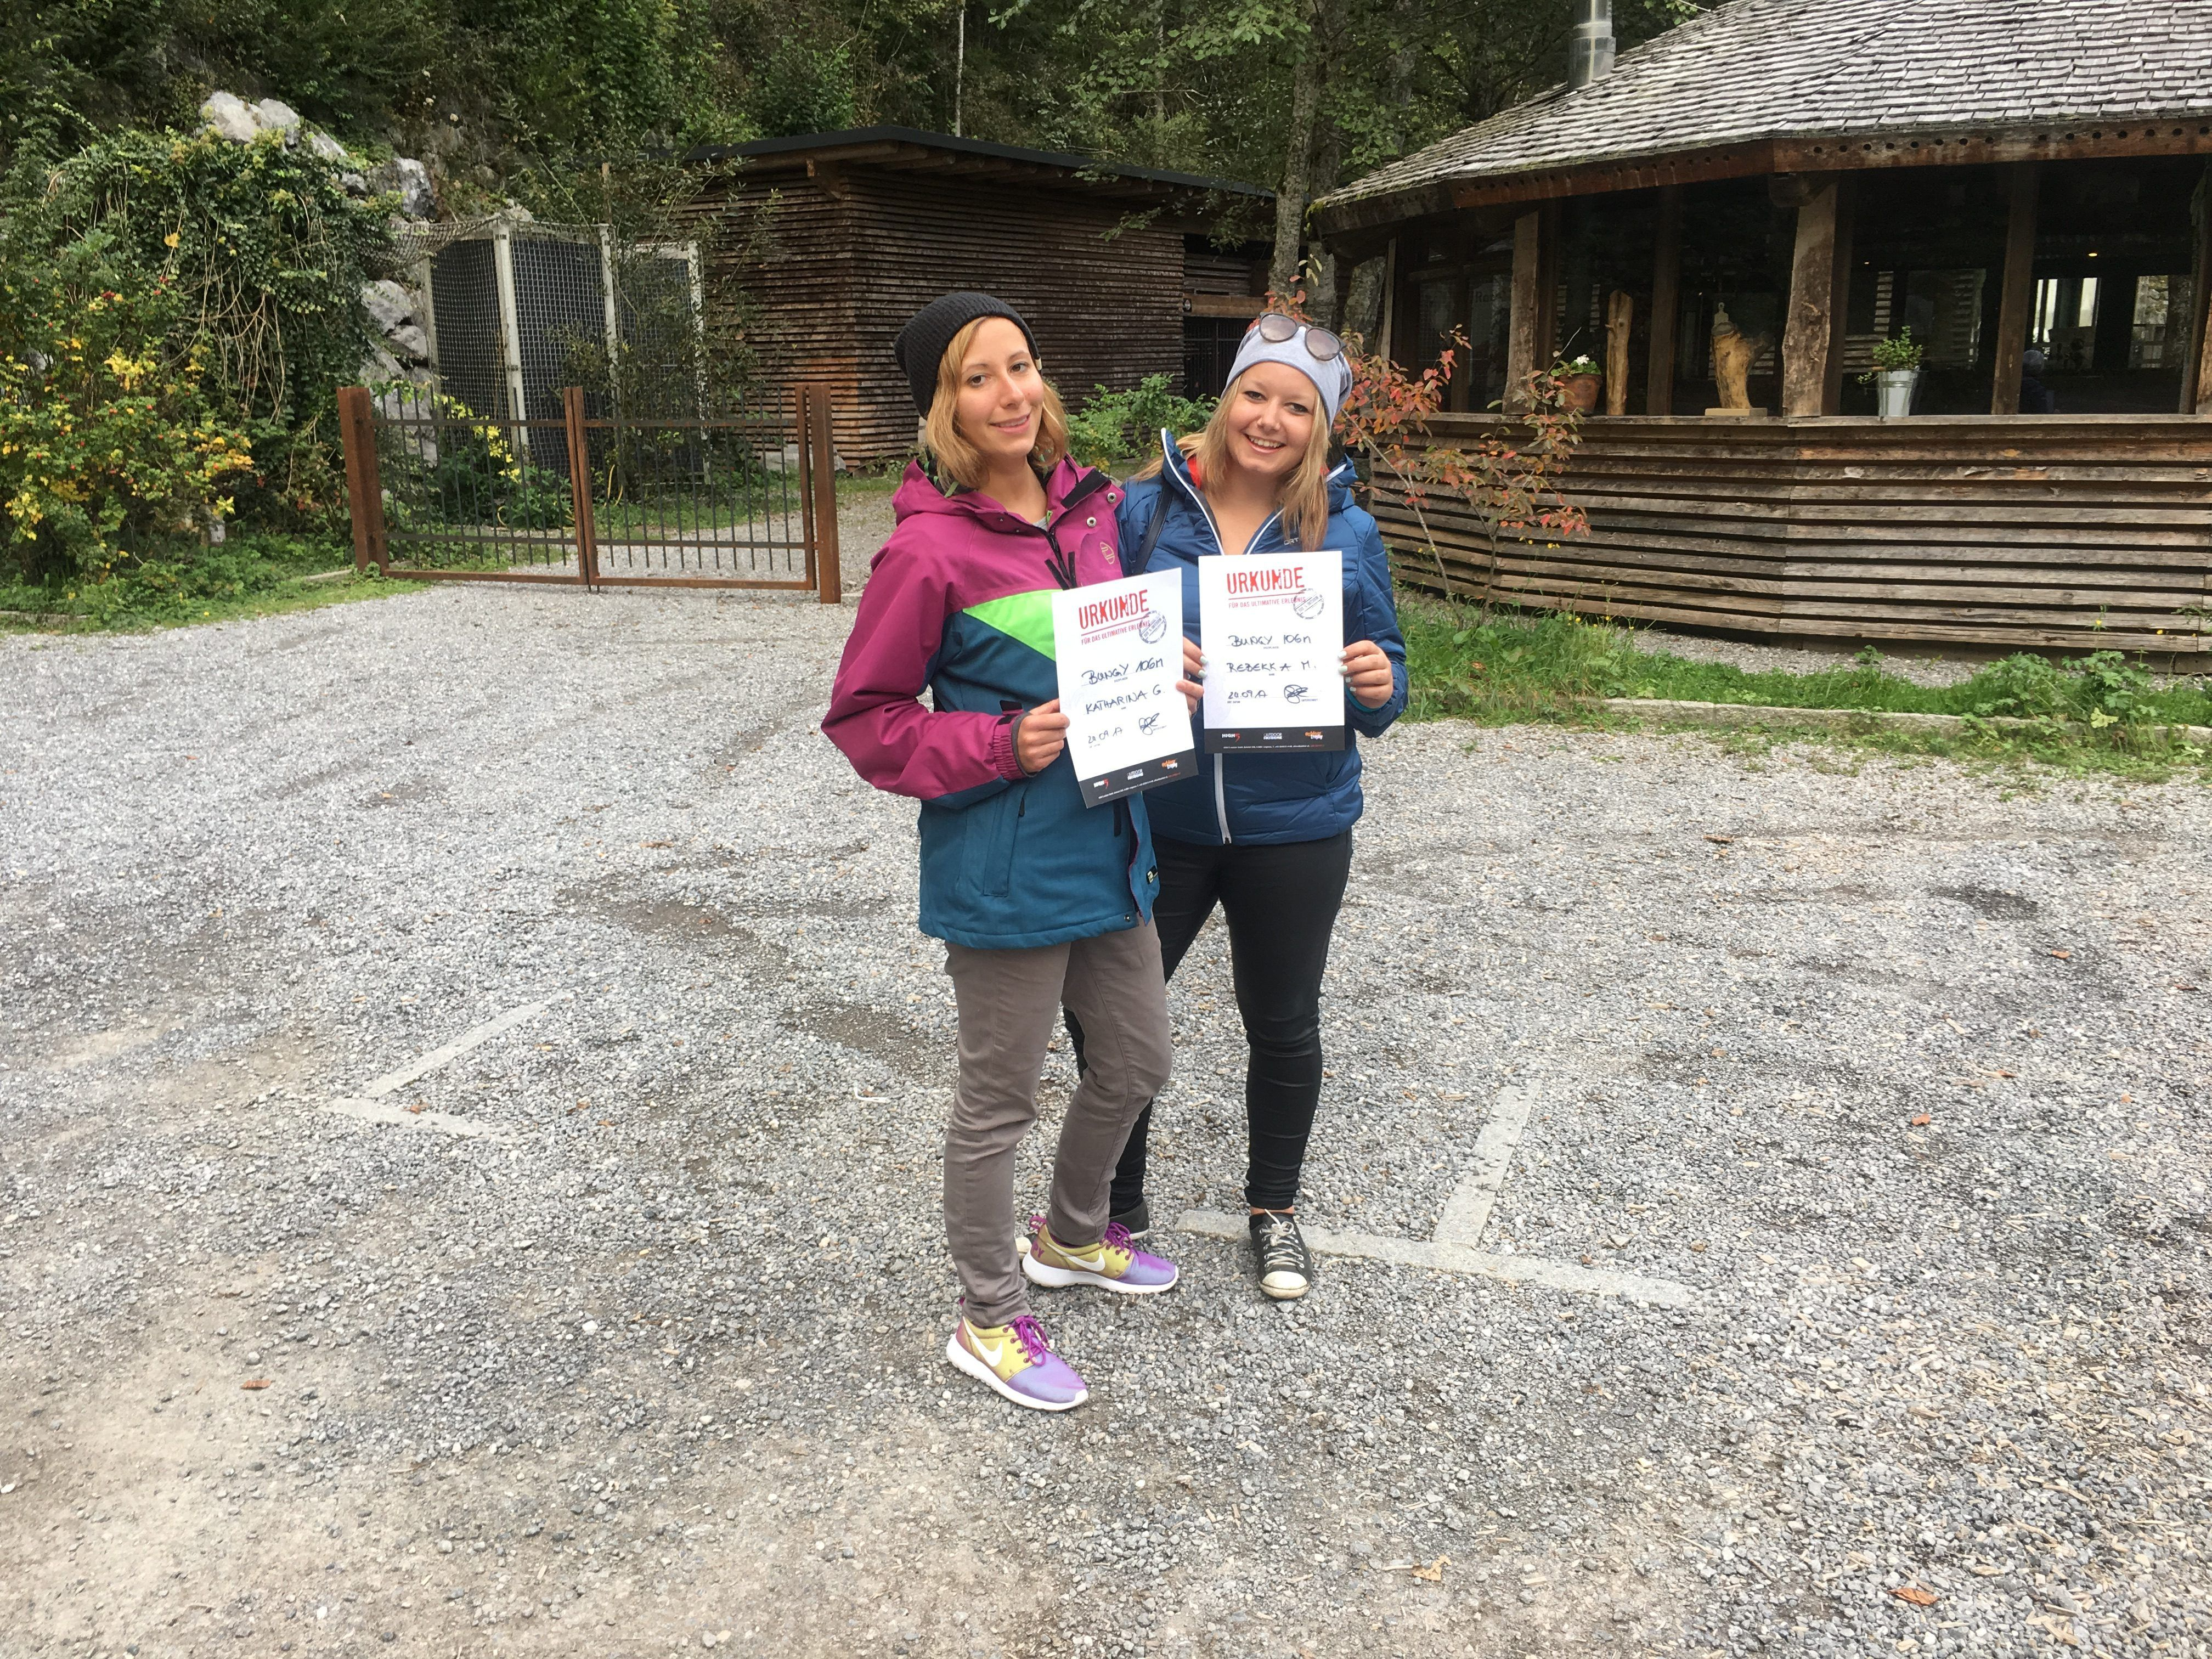 Die Gewinnerinnen im HIGH 5 Outdoorcenter in Lingenau.